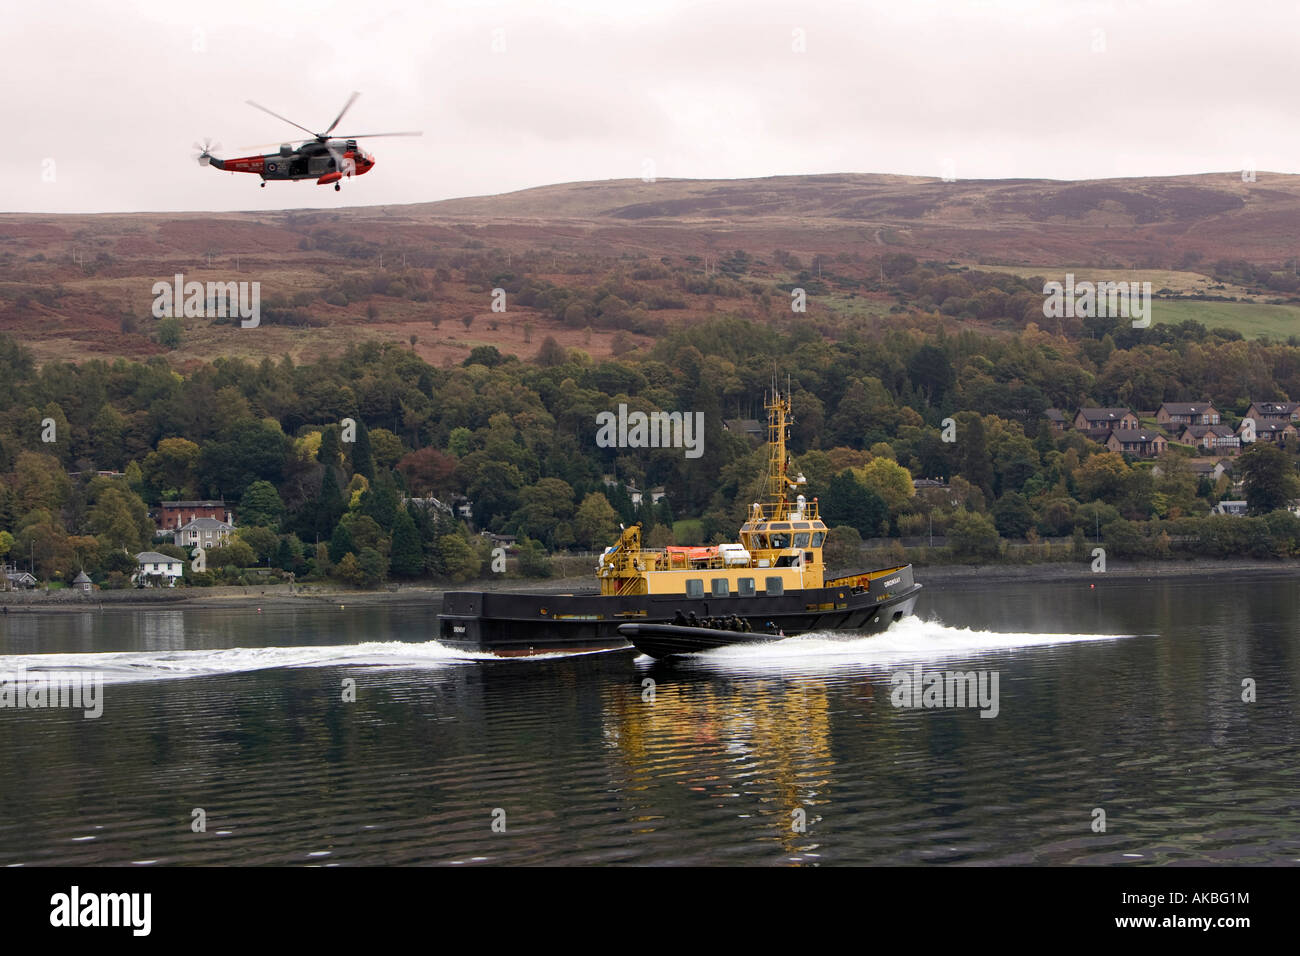 British Navy Royal Marines on a simulated drugs raid on a moving boat on Gare Loch in Scotland - Stock Image